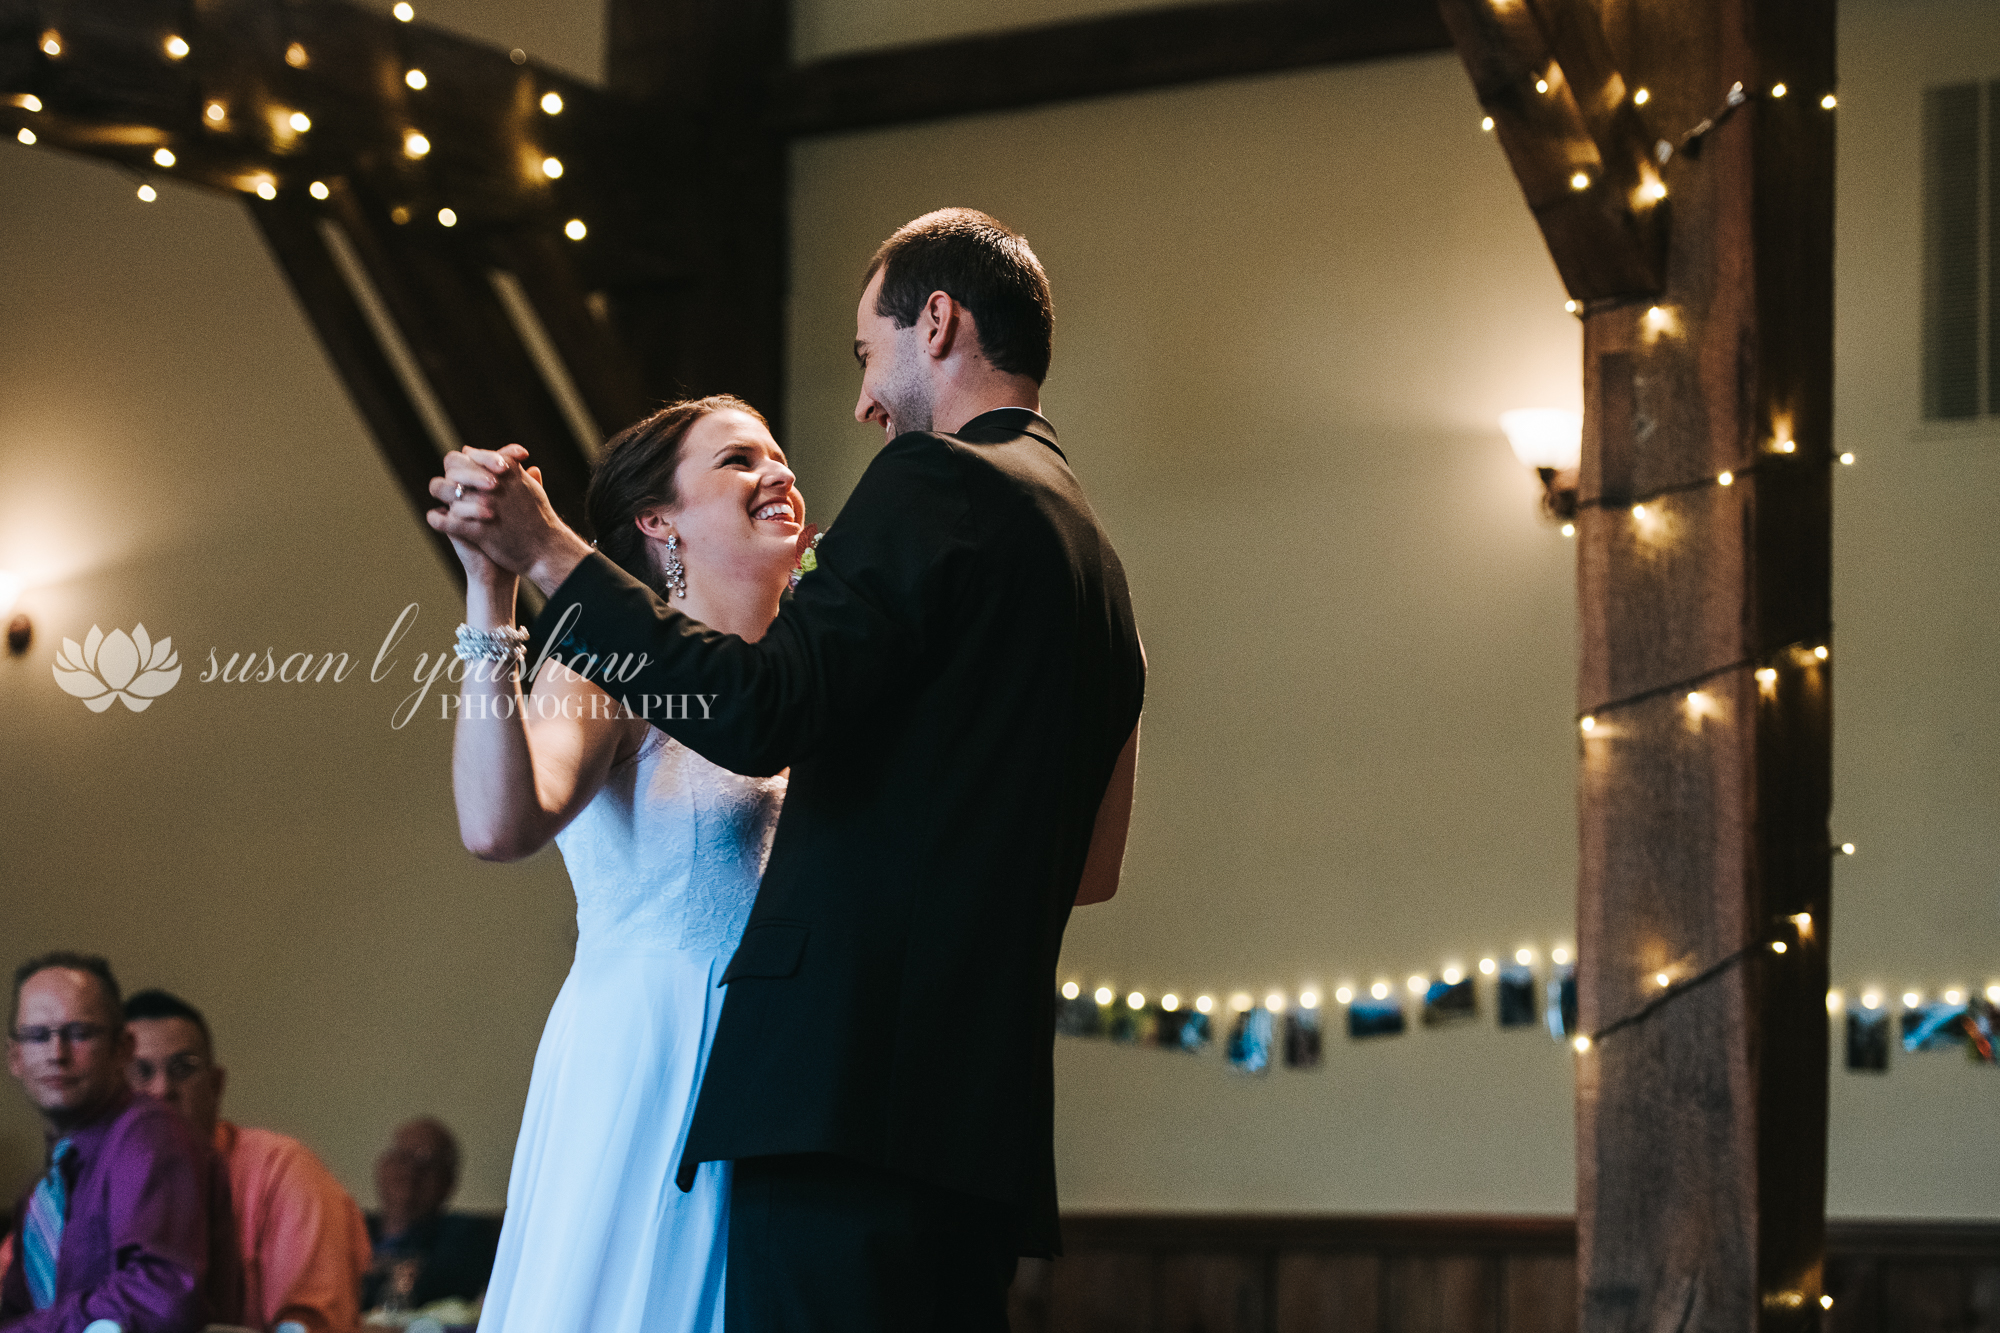 Adena and  Erik Wedding 05-17-2019 SLY Photography-98.jpg